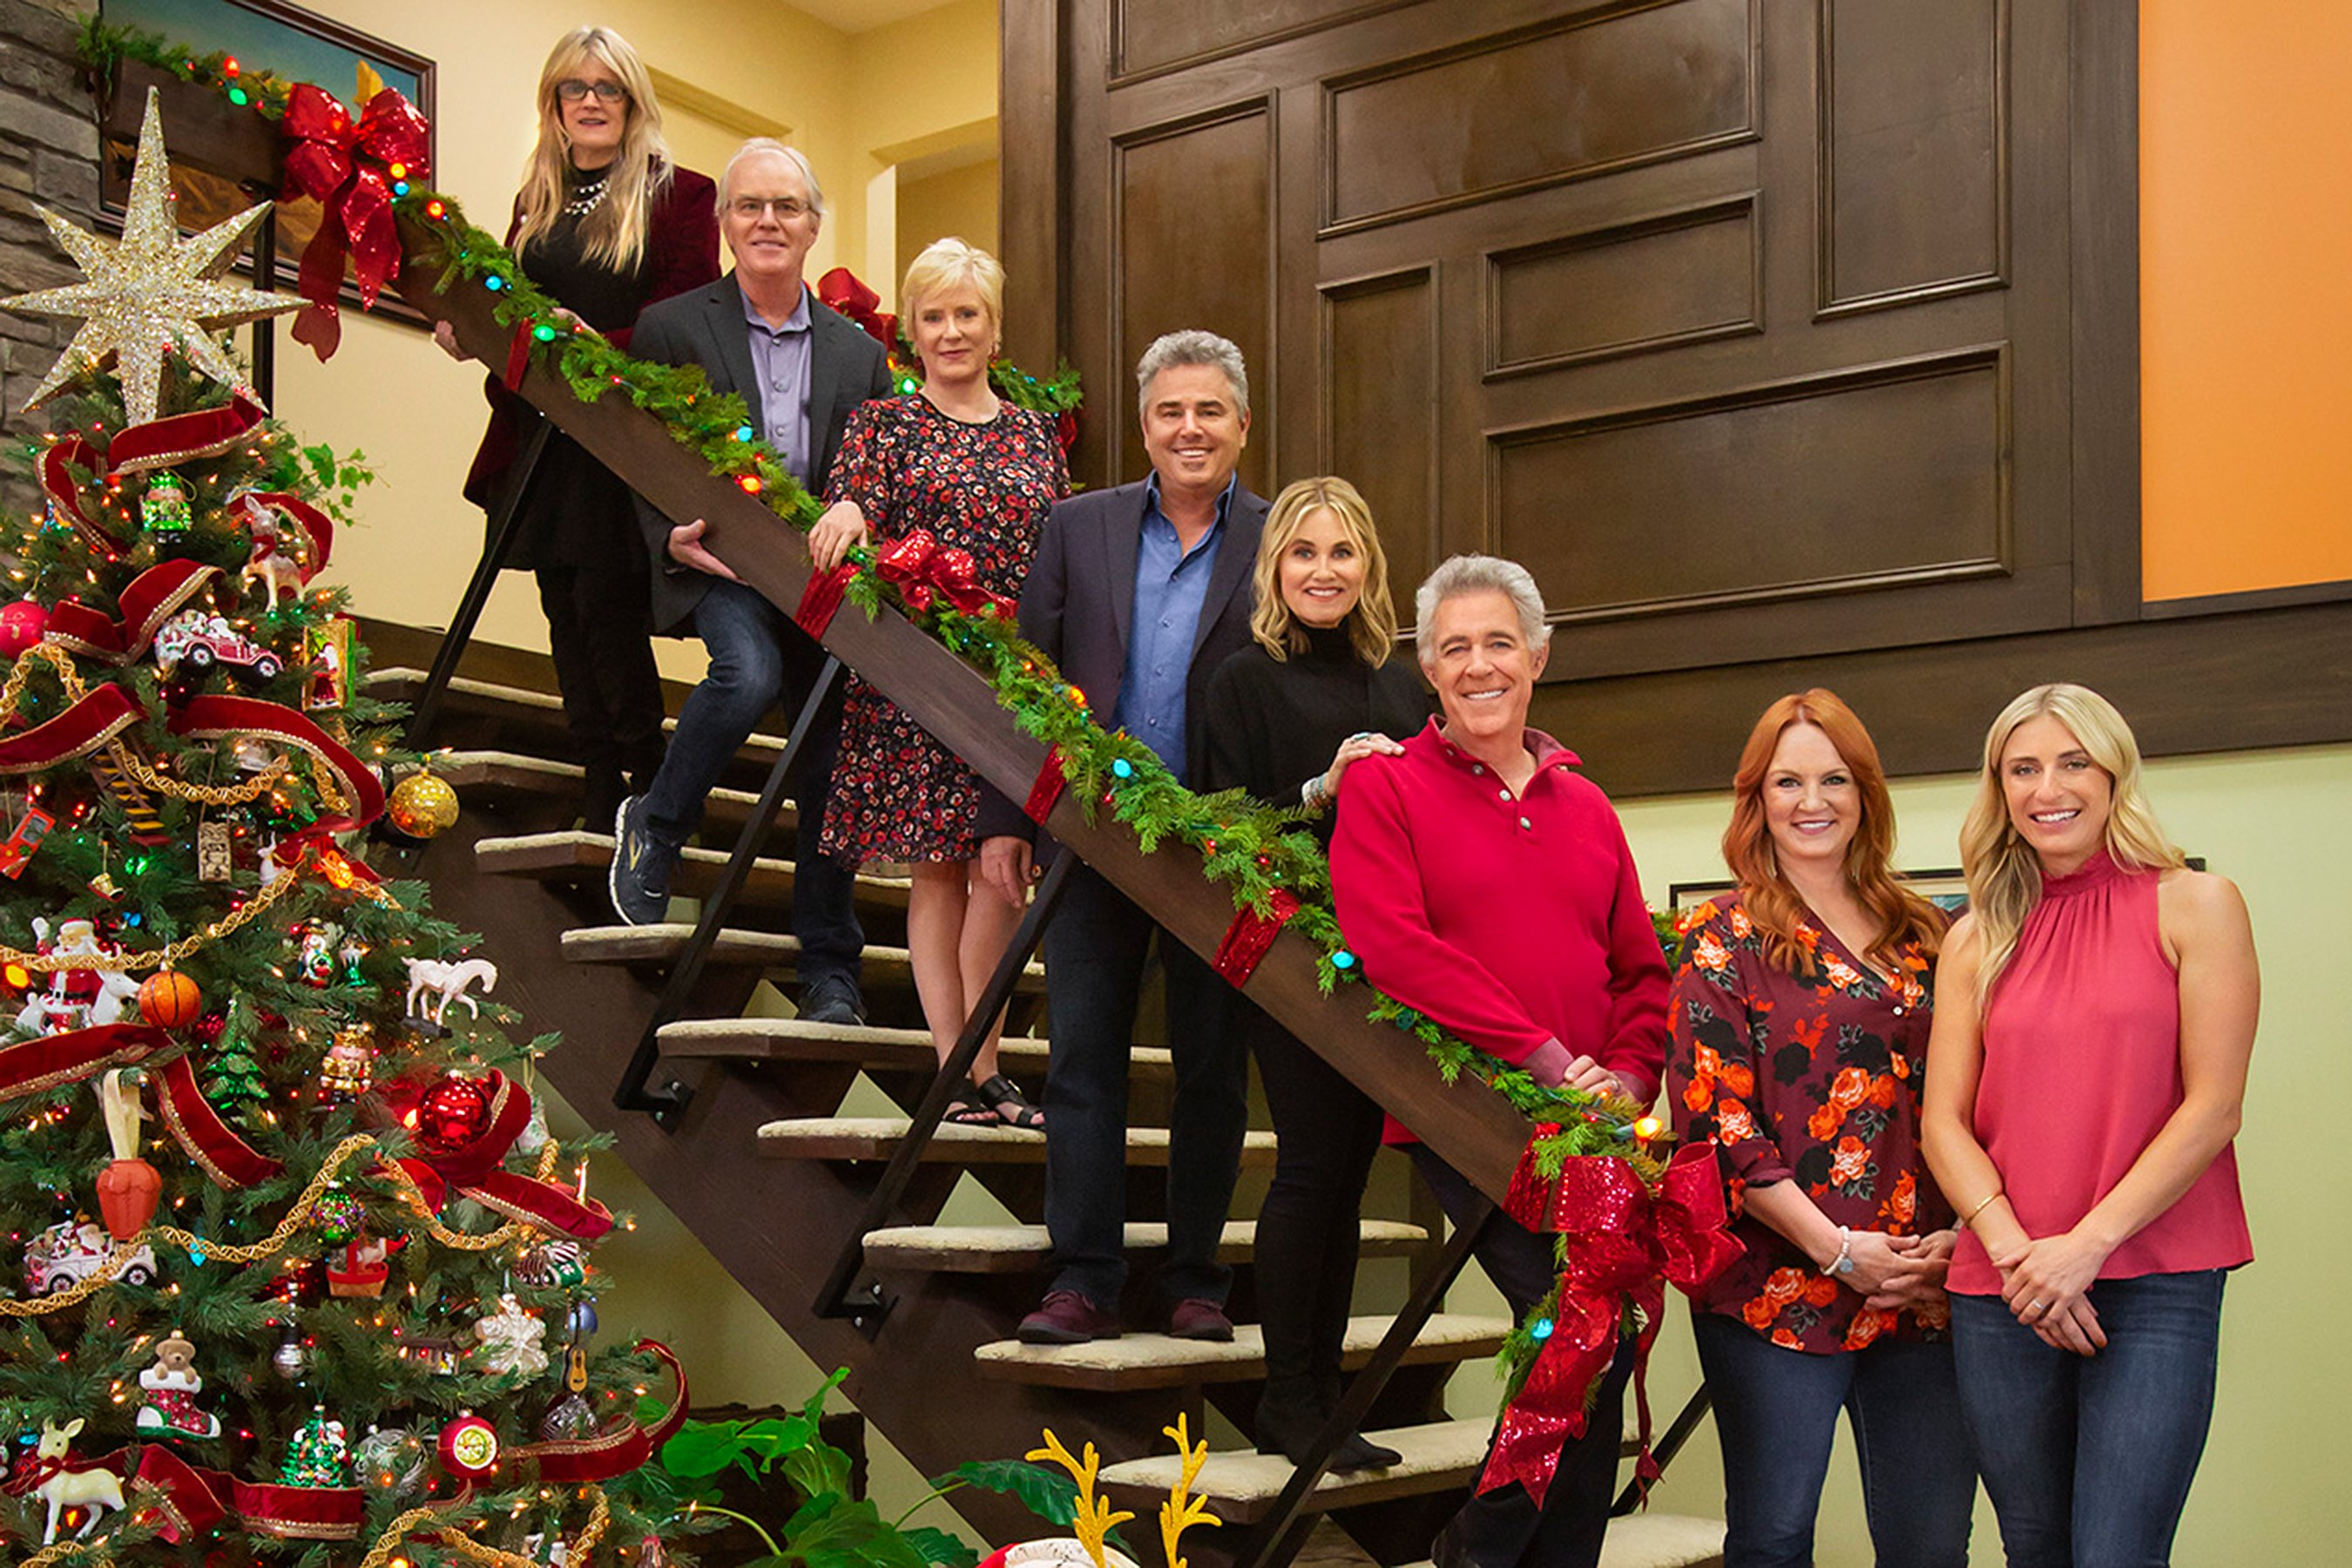 A Very Brady Renovation Holiday Episode with Ree Drummond